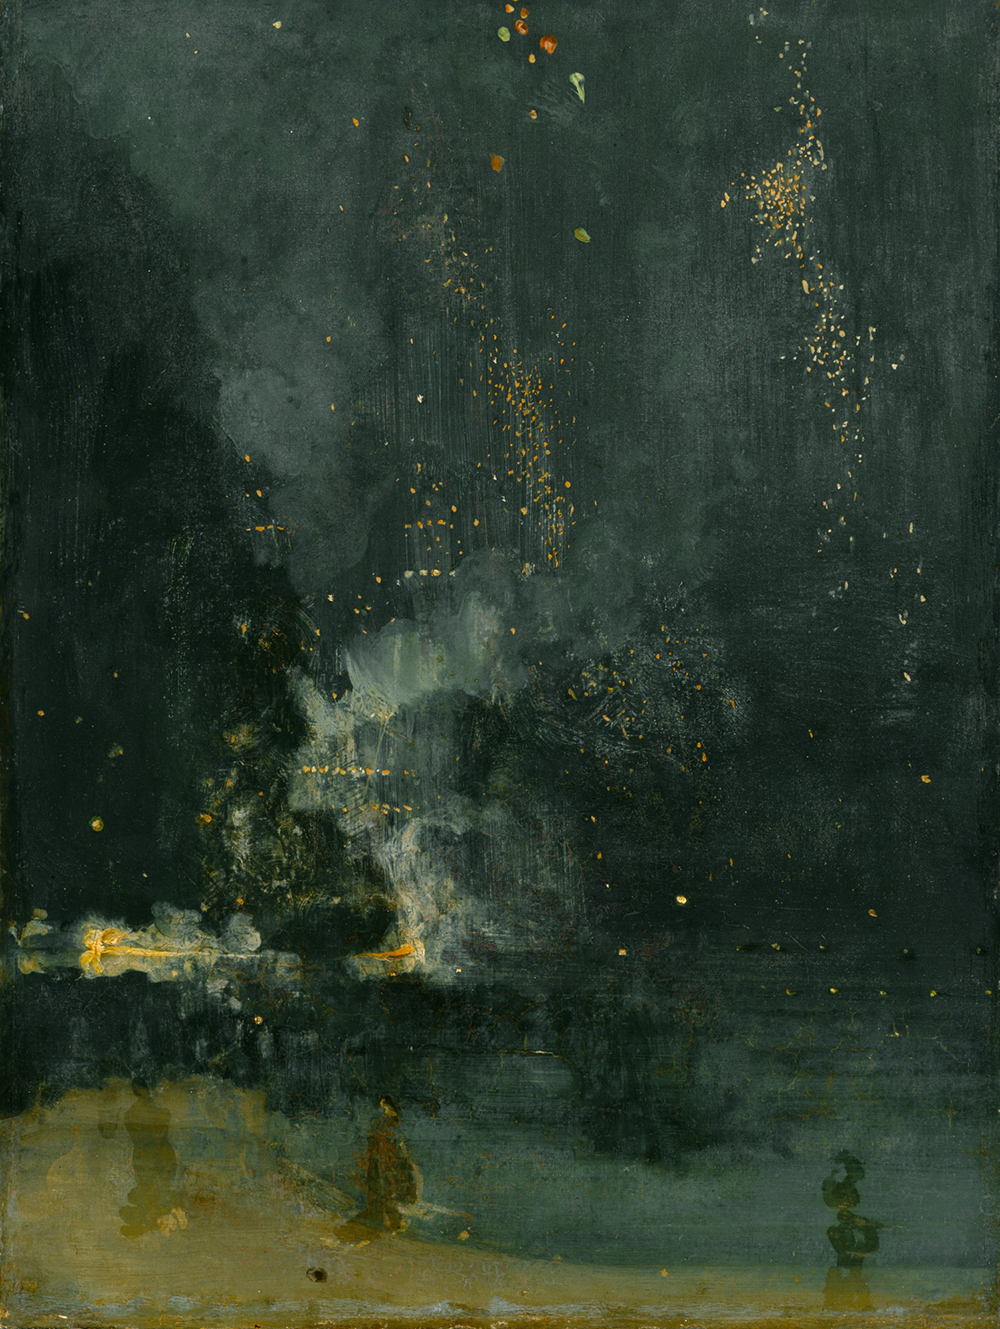 Nocturne in Black and Gold, the Falling Rocket, by James Abbott McNeill Whistler, 1875. Detroit Institute of Arts, Gift of Dexter M. Ferry, Jr.